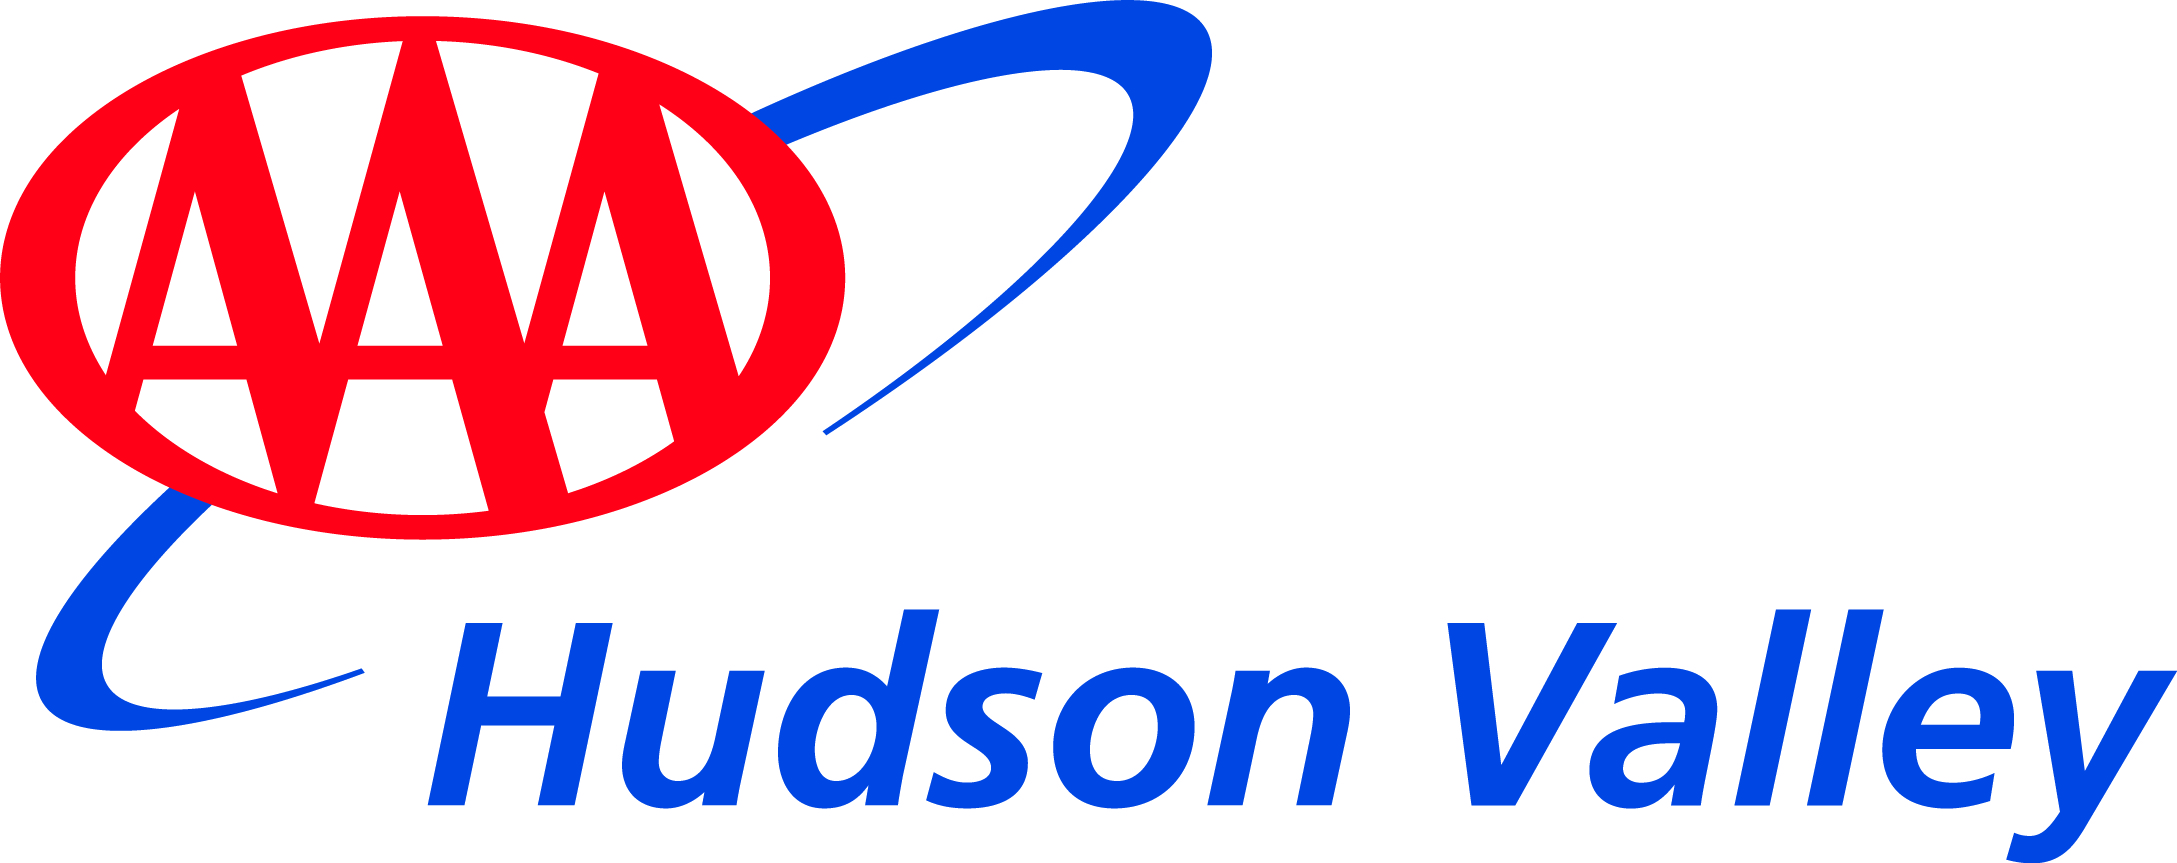 AAA Hudson Valley logo